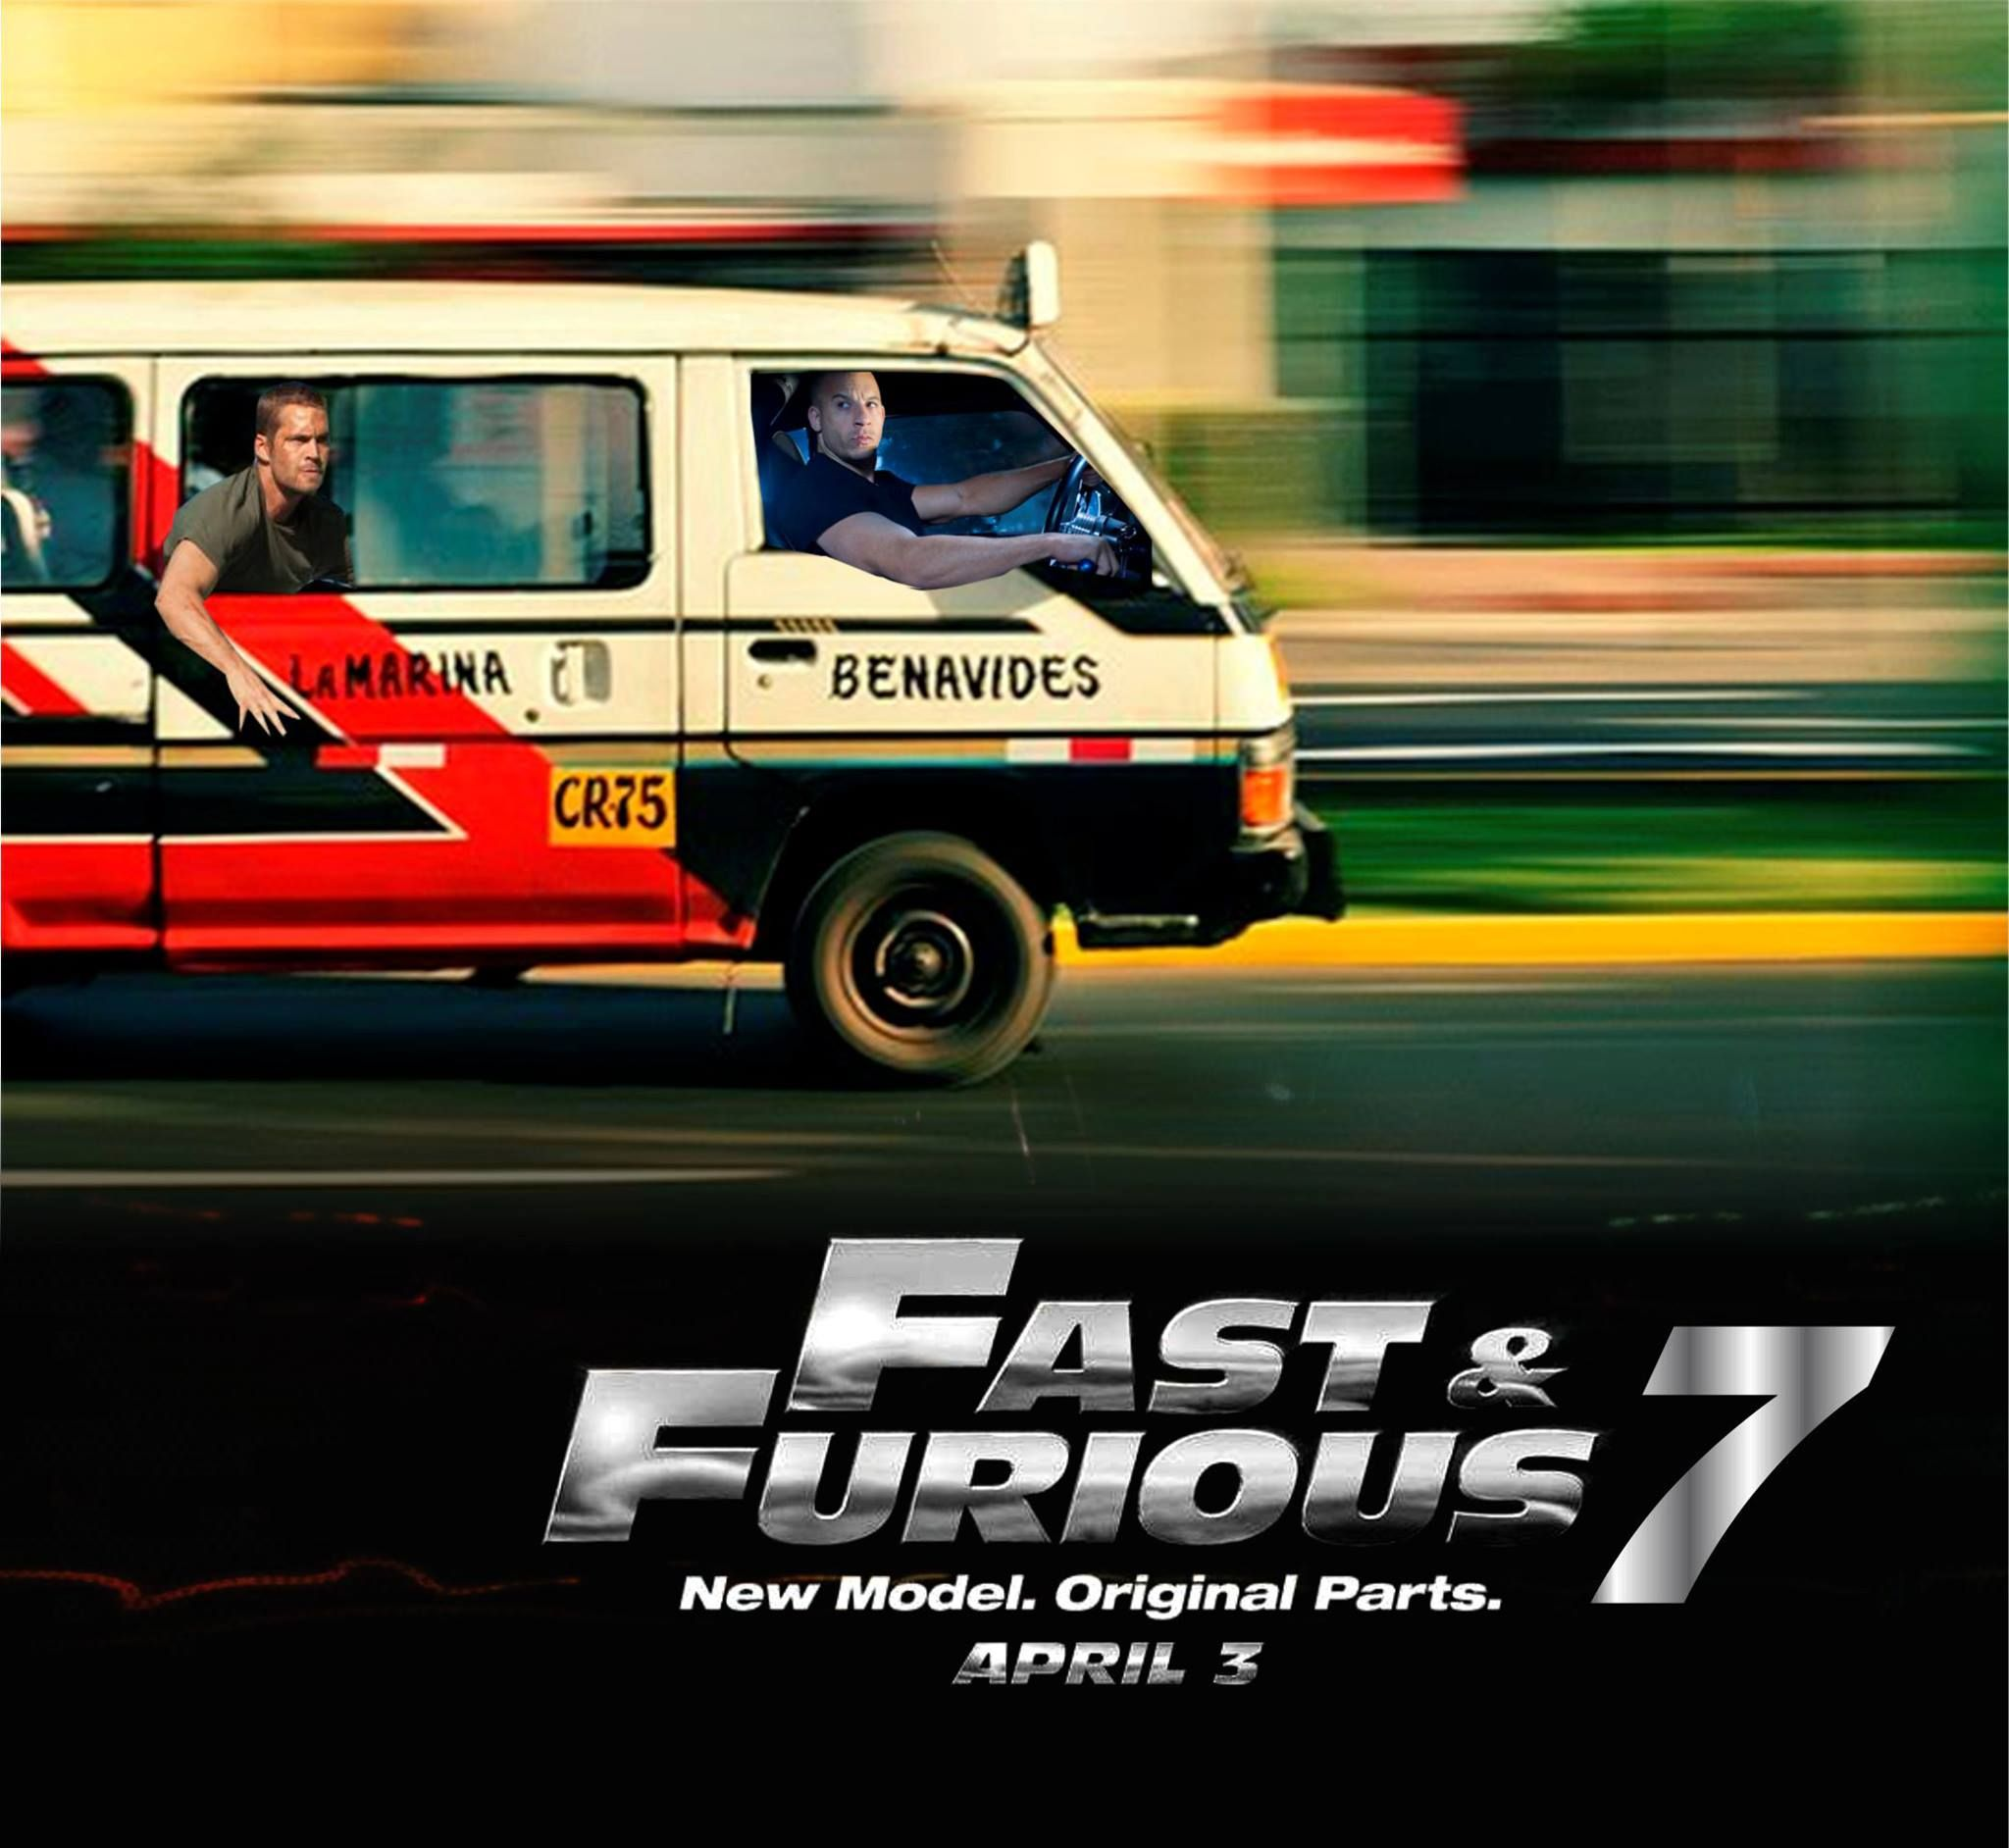 fast furious 7 hd picture wallpaper wallpaper - Fast And Furious 7 Cars Wallpapers